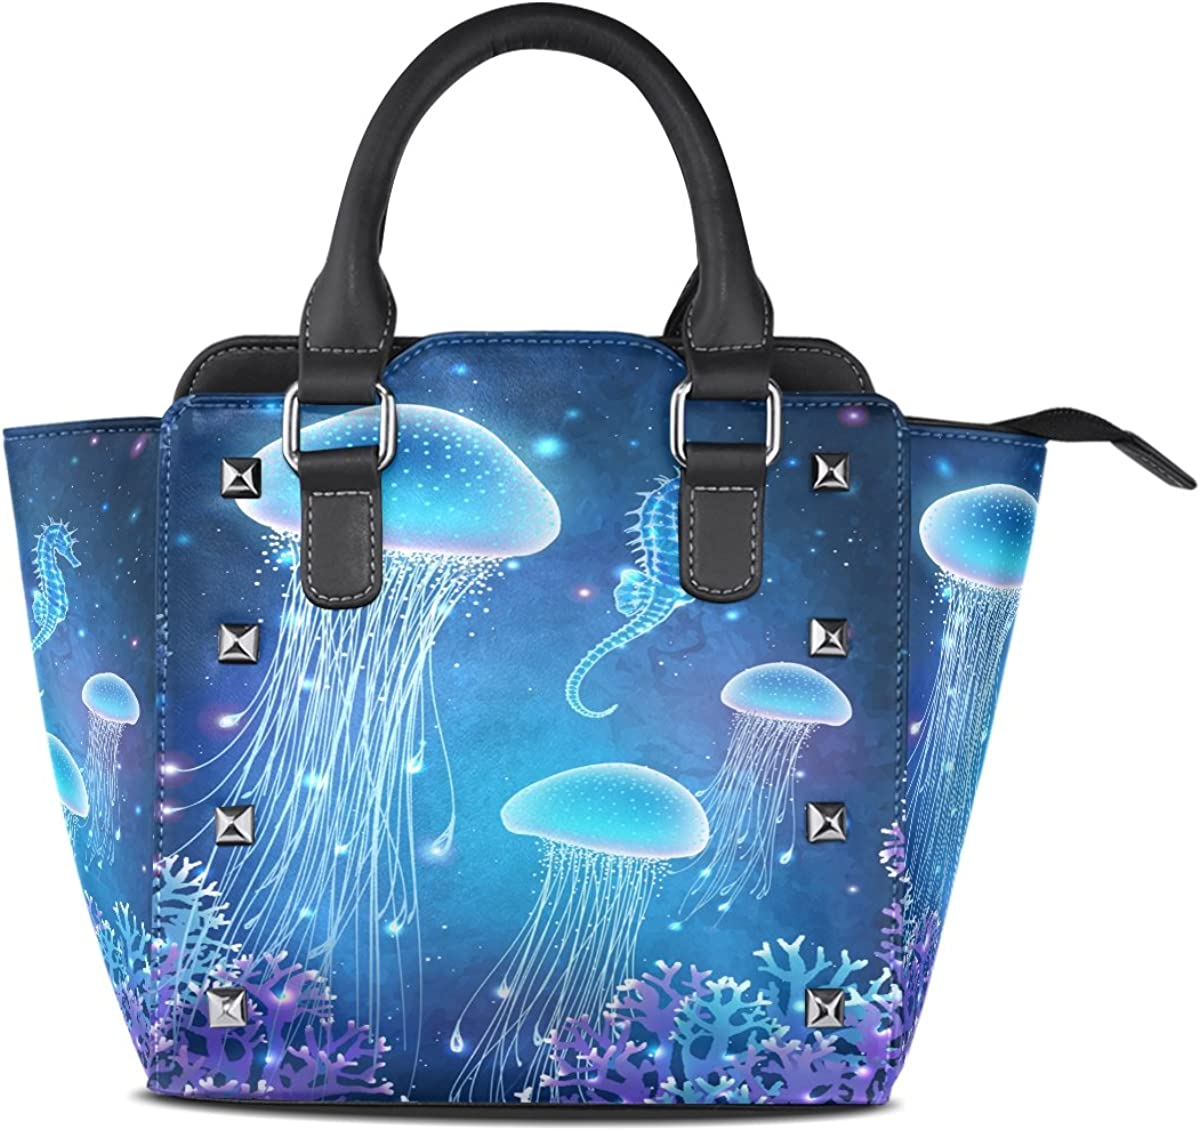 Jennifer PU Leather Top-Handle Handbags Magic Glowing Jellyfish Seahorse Underwater Single-Shoulder Tote Crossbody Bag Messenger Bags For Women